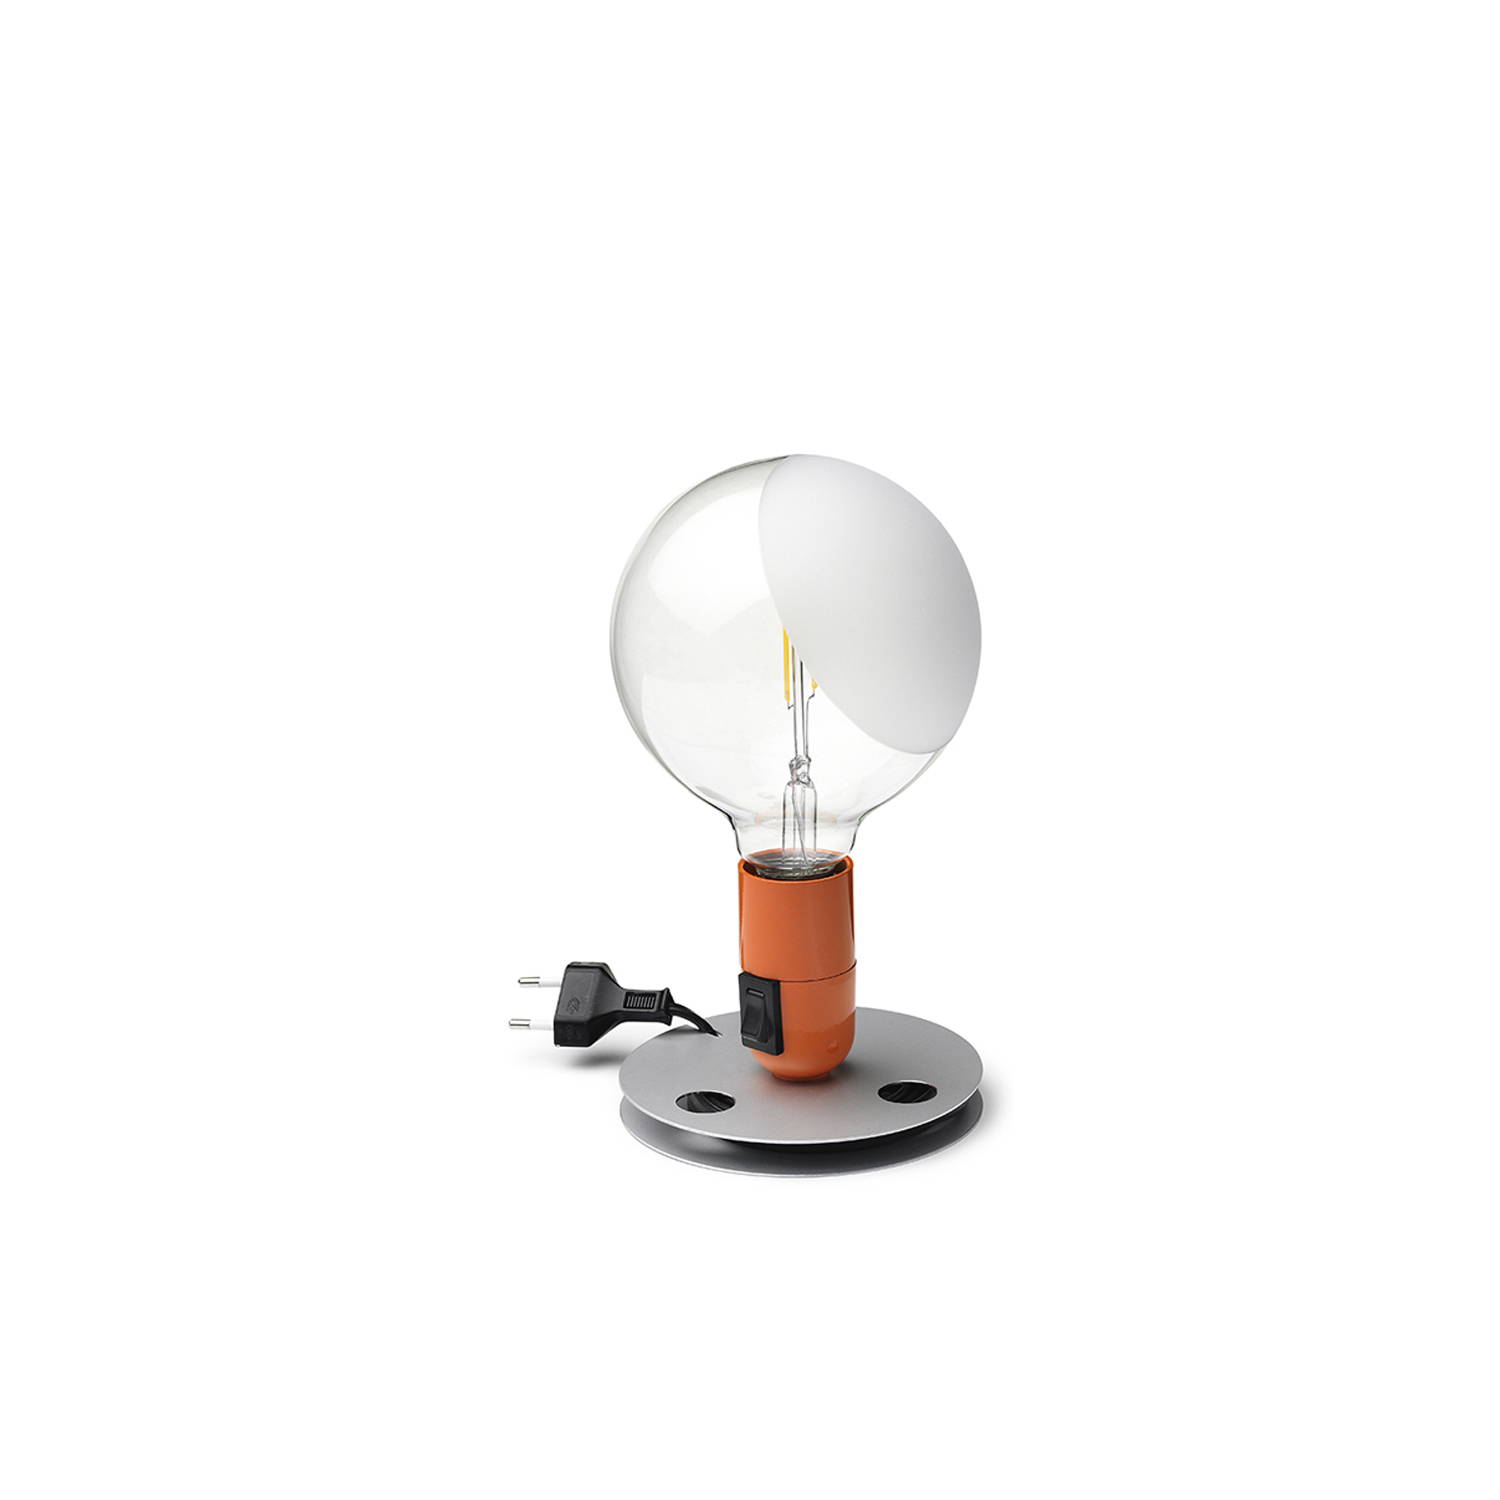 Lampadina Table Lamp - Table lamp providing direct, diffused light. Anodized aluminum base serves to contain excess power cord. Bakelite lamp-holder, painted to match the switch in the orange and black colors. Clear globe lamp is partially sandblasted to diffuse the light.  | Matter of Stuff